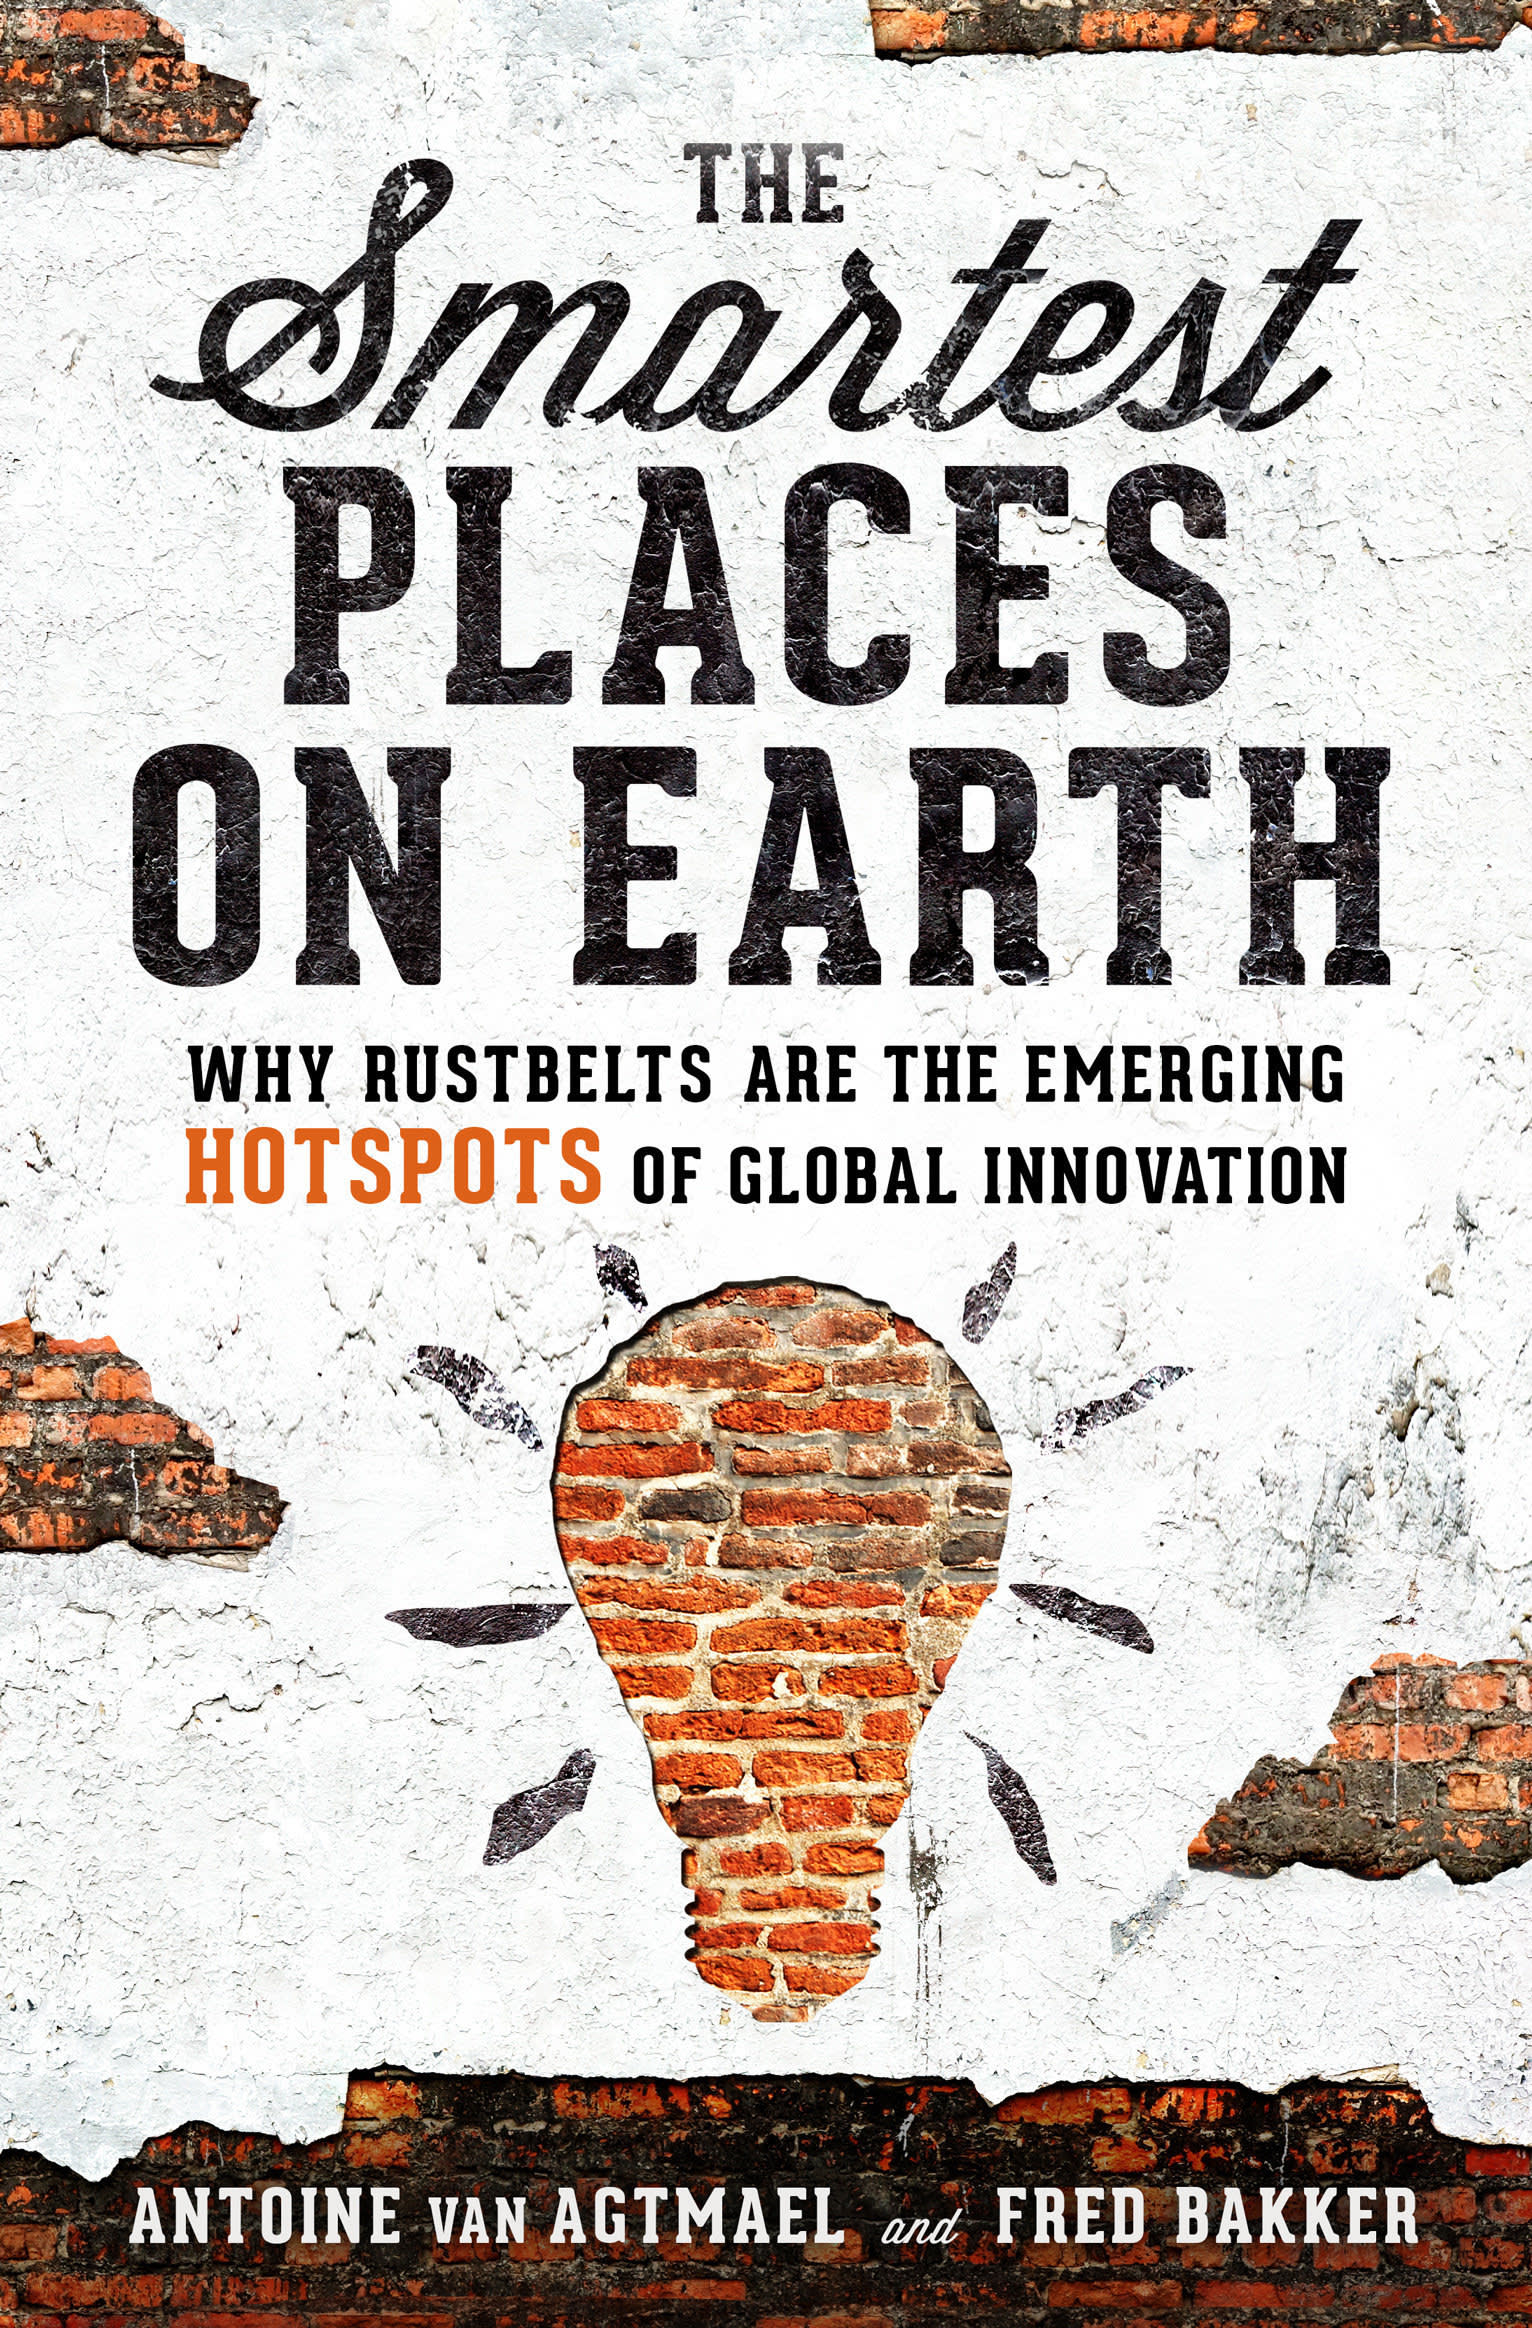 The Smartest Places on Earth by Antoine van Agtmael and Fred Bakker